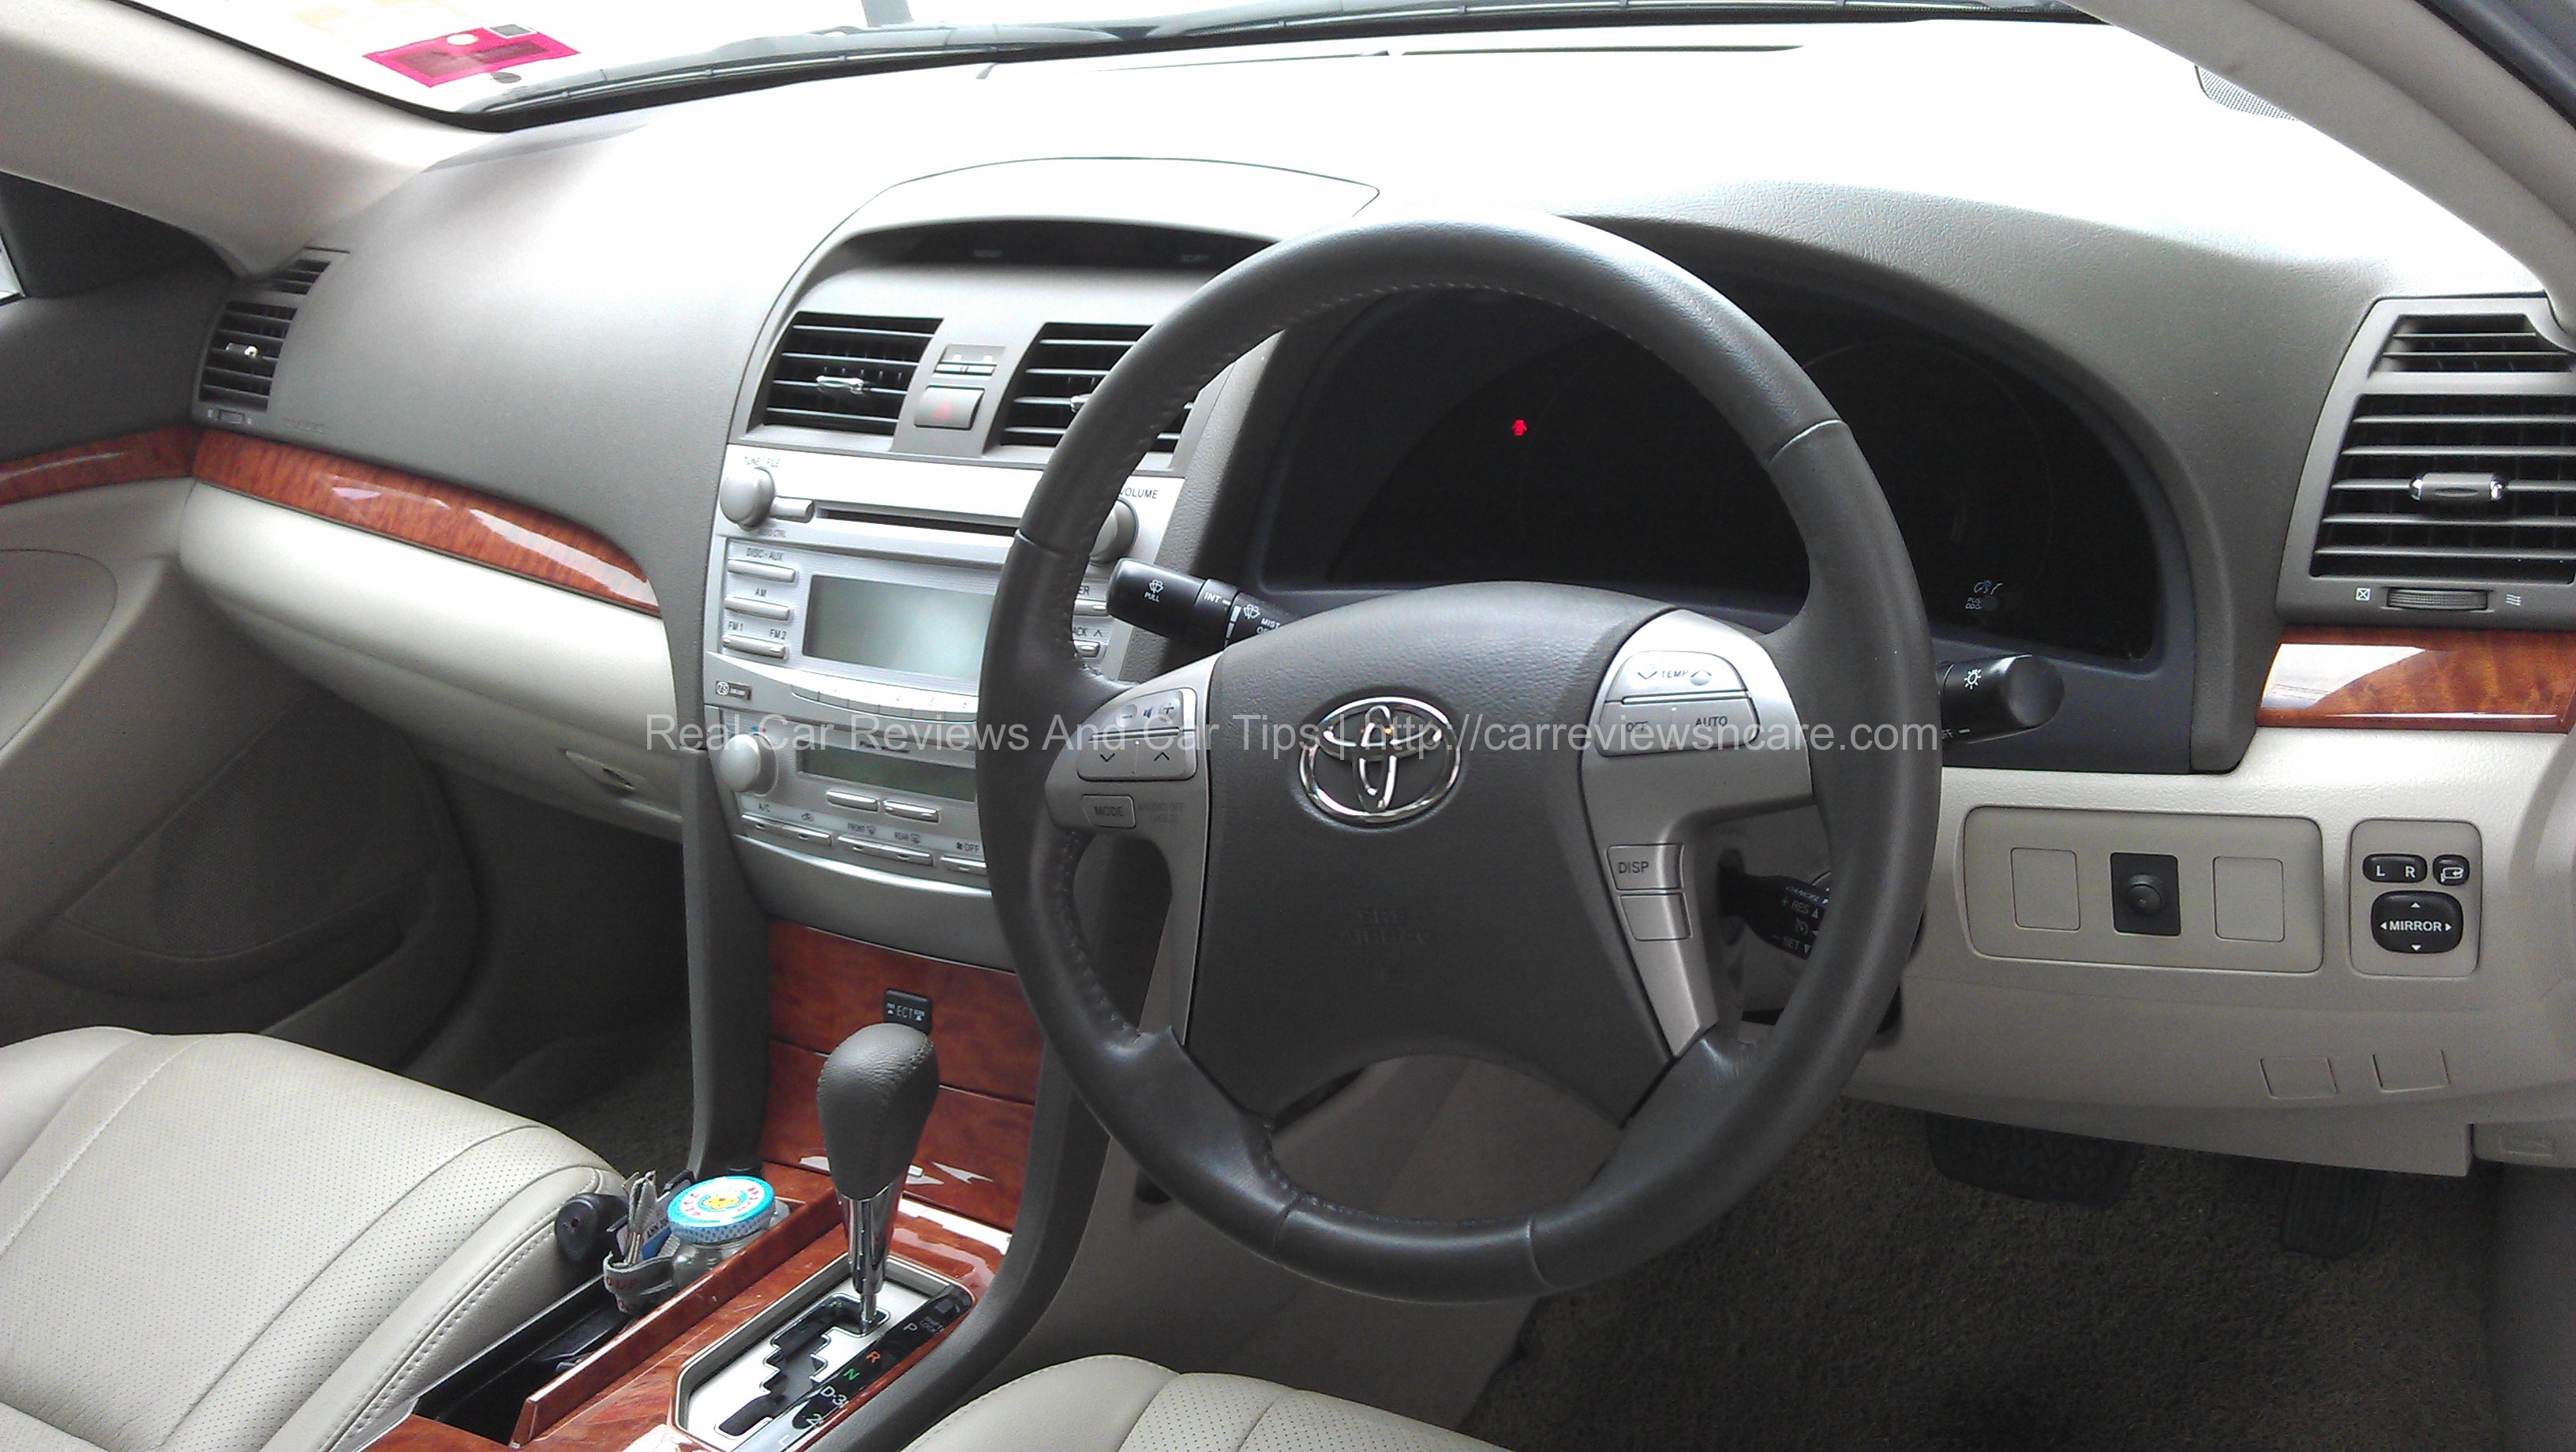 Leather Adjustable Electronic Seats Toyota Camry 2.0G 2011 Dashboard